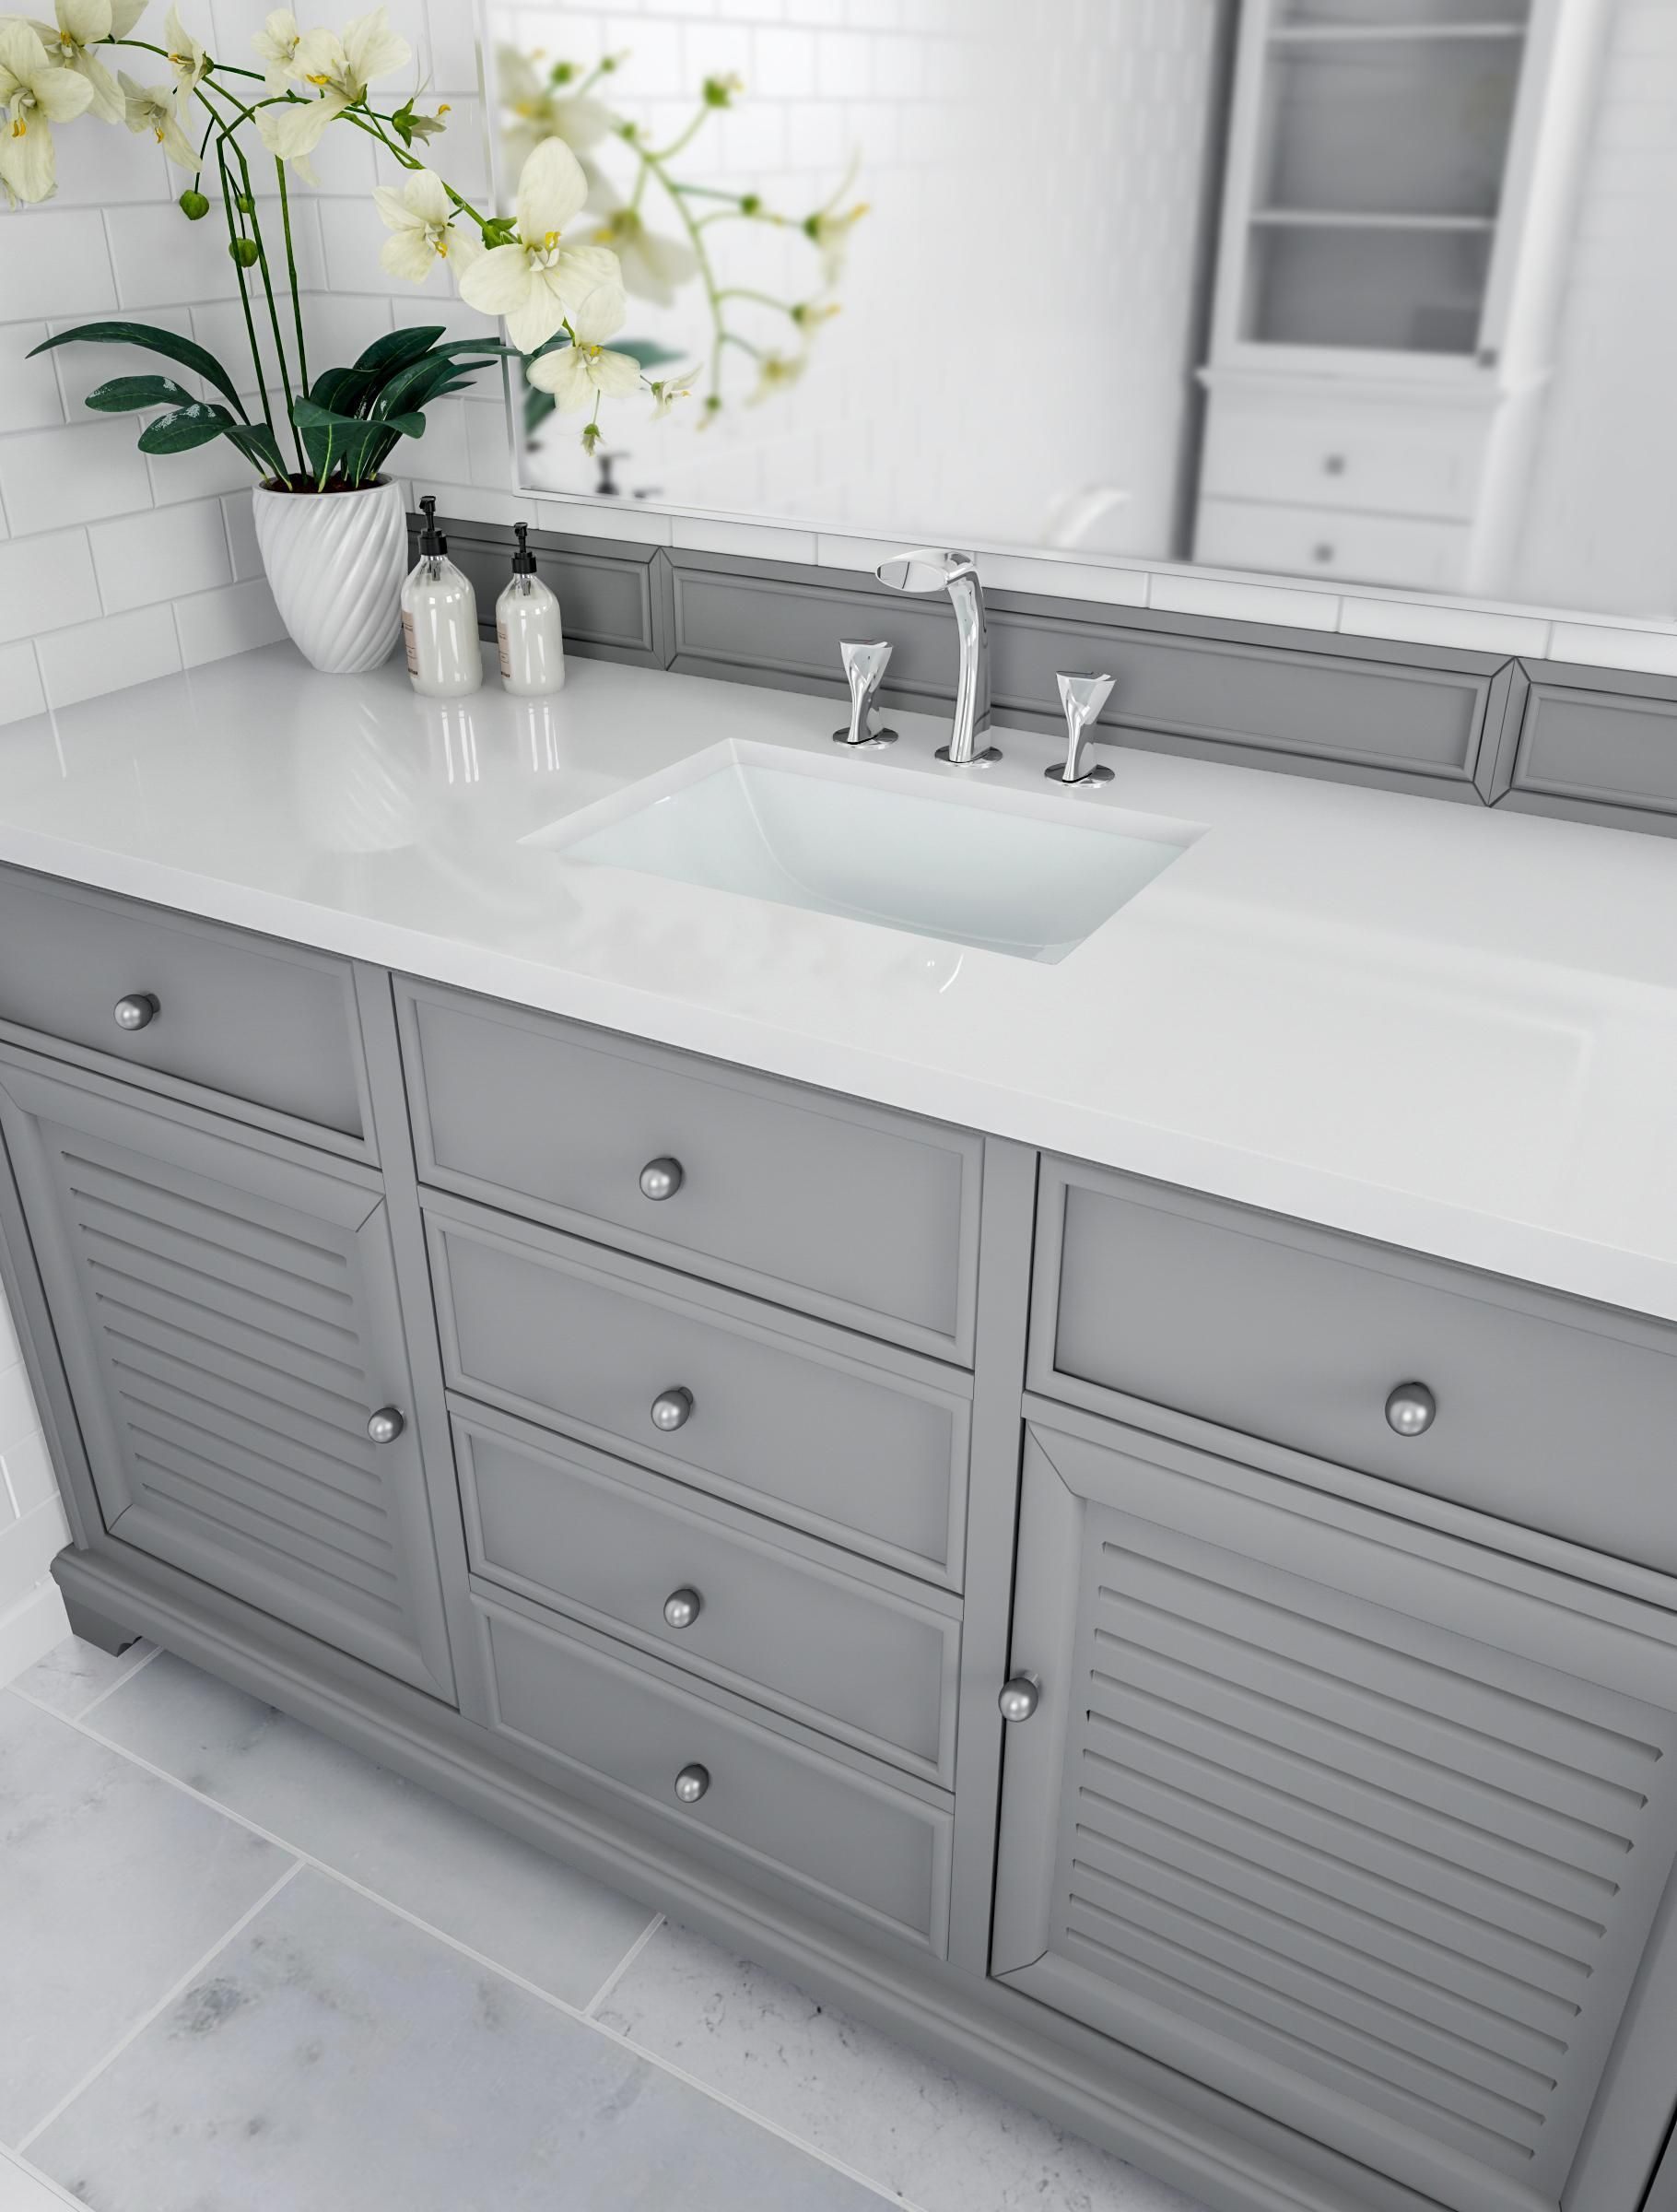 Bathroom Faucets: The Ultimate Buying Guide   Bathroom Faucets Ideas ...